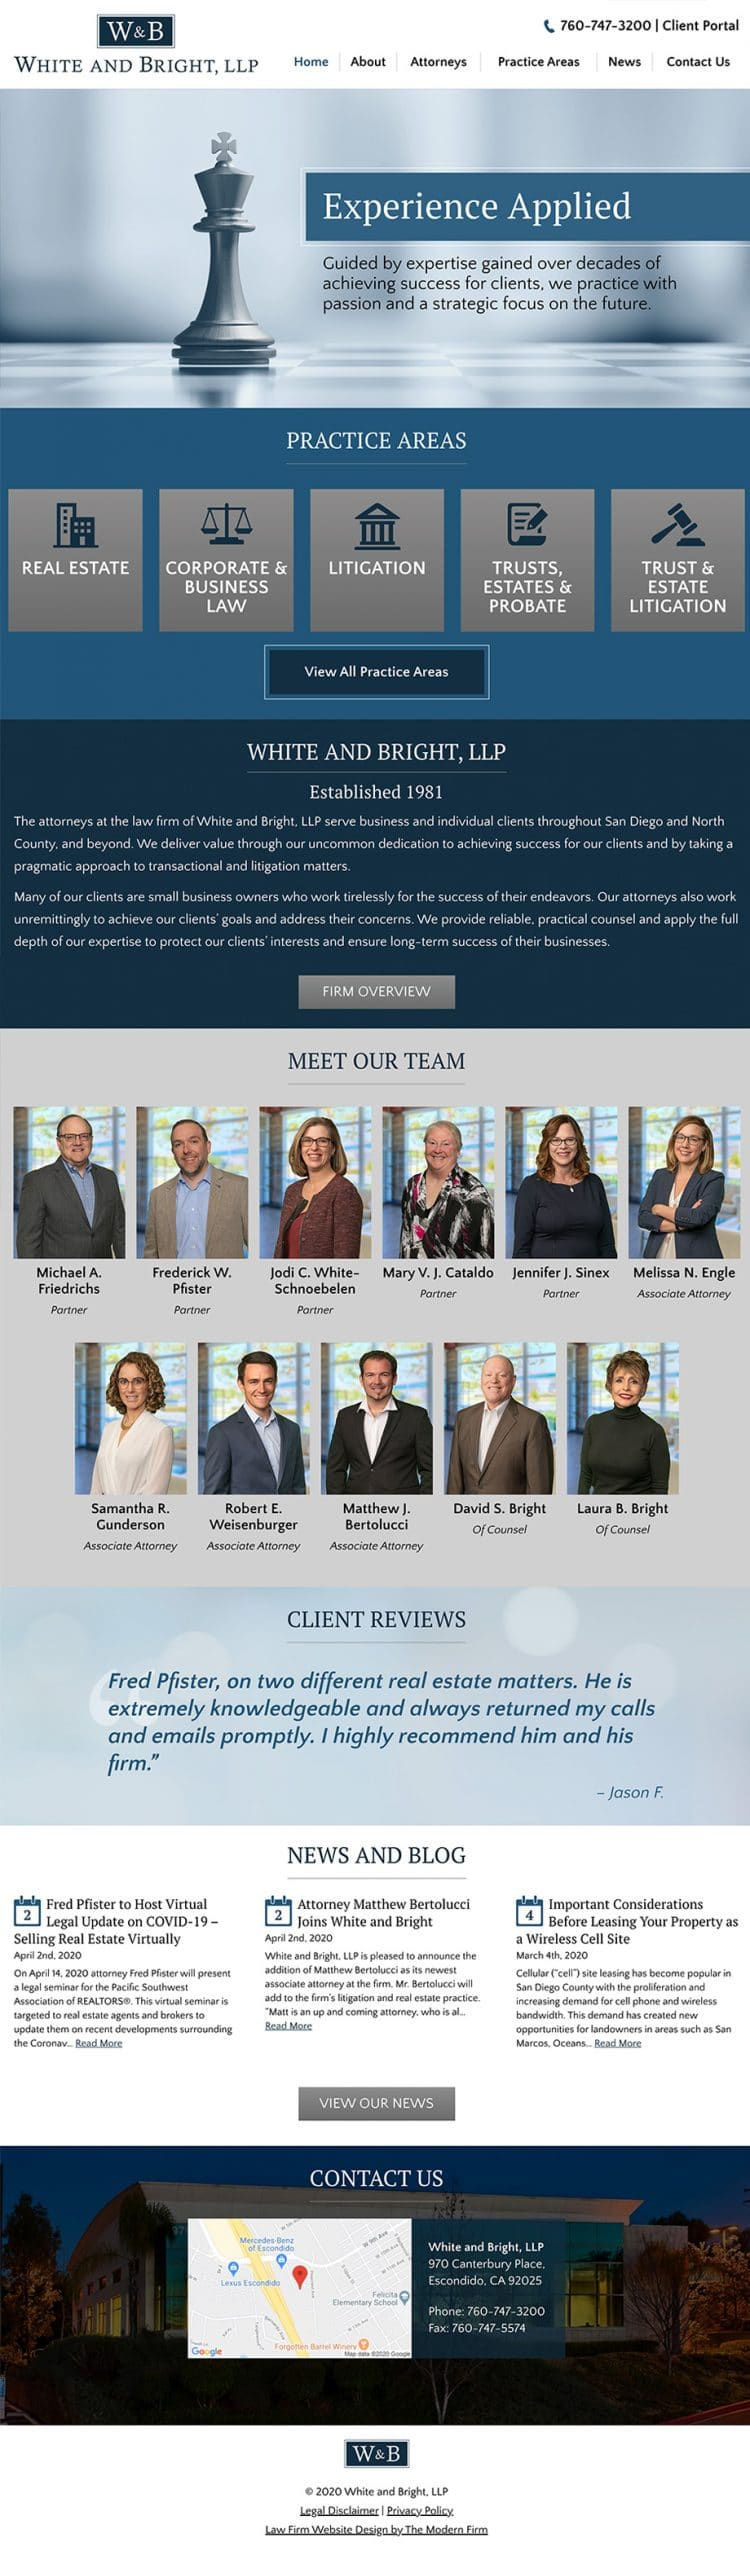 Law Firm Website for White and Bright, LLP